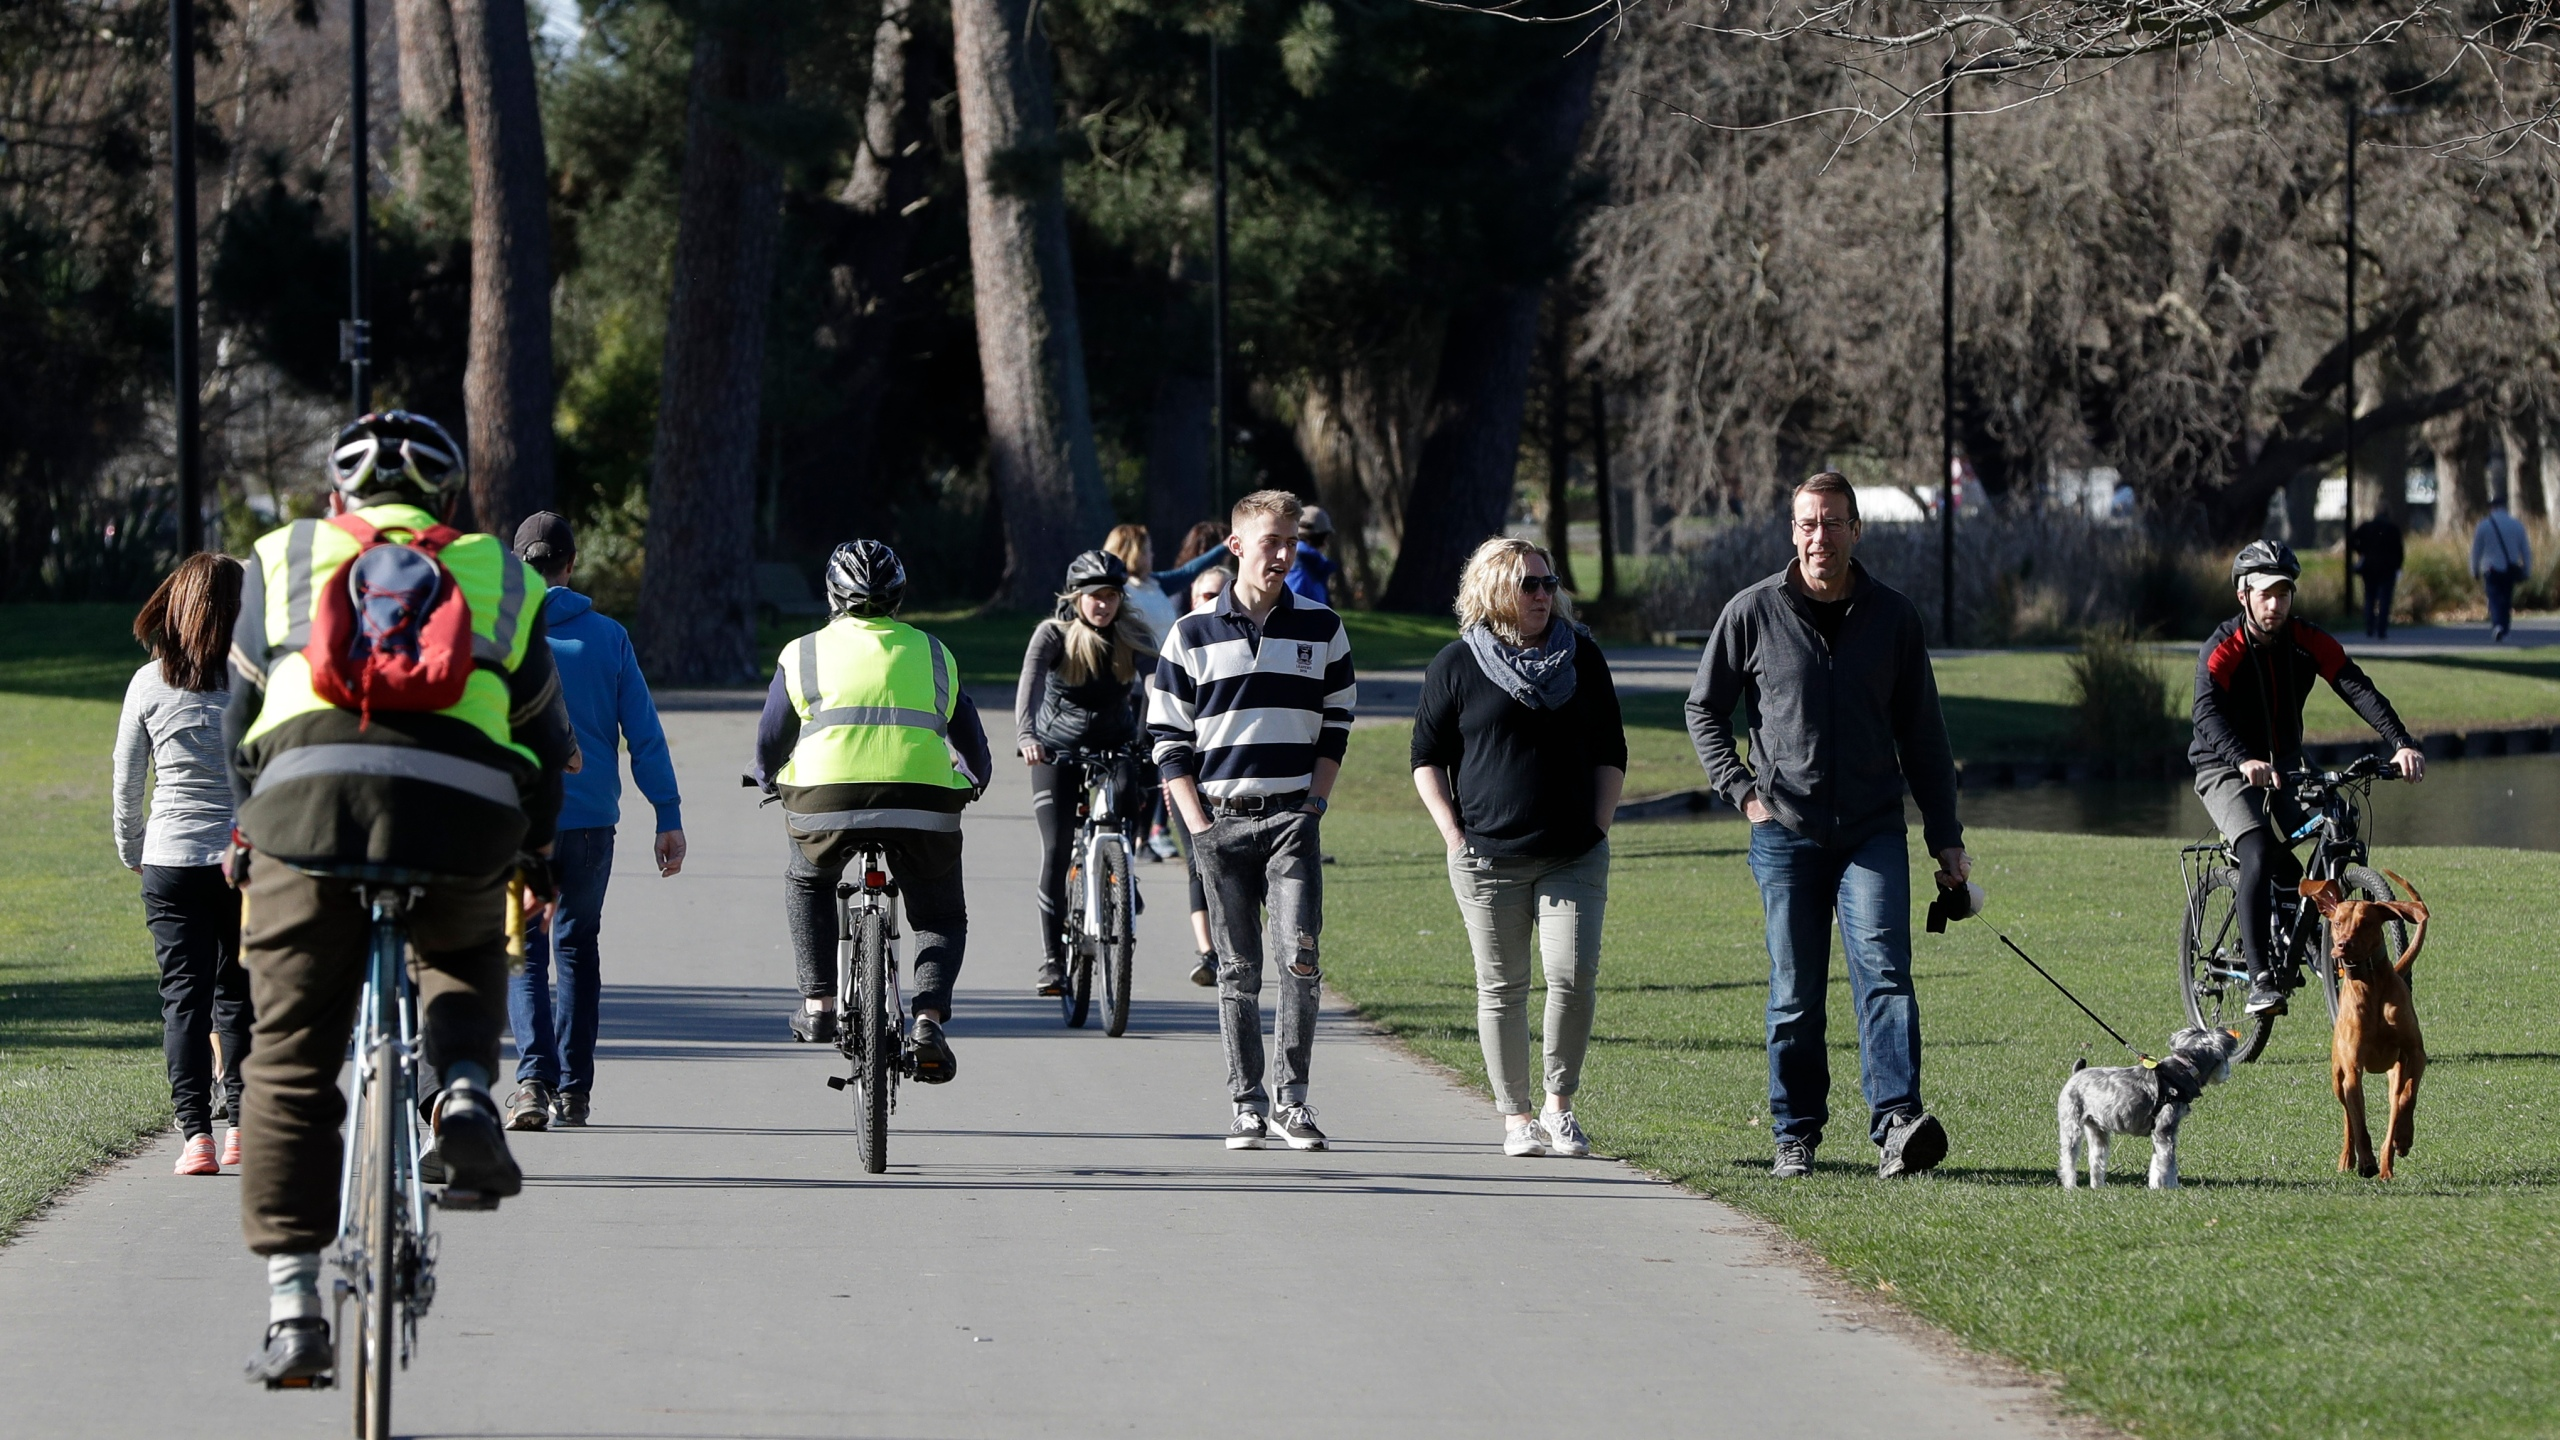 Residents exercise at Hagley Park in Christchurch, New Zealand, Sunday, Aug. 9, 2020. (AP Photo/Mark Baker)